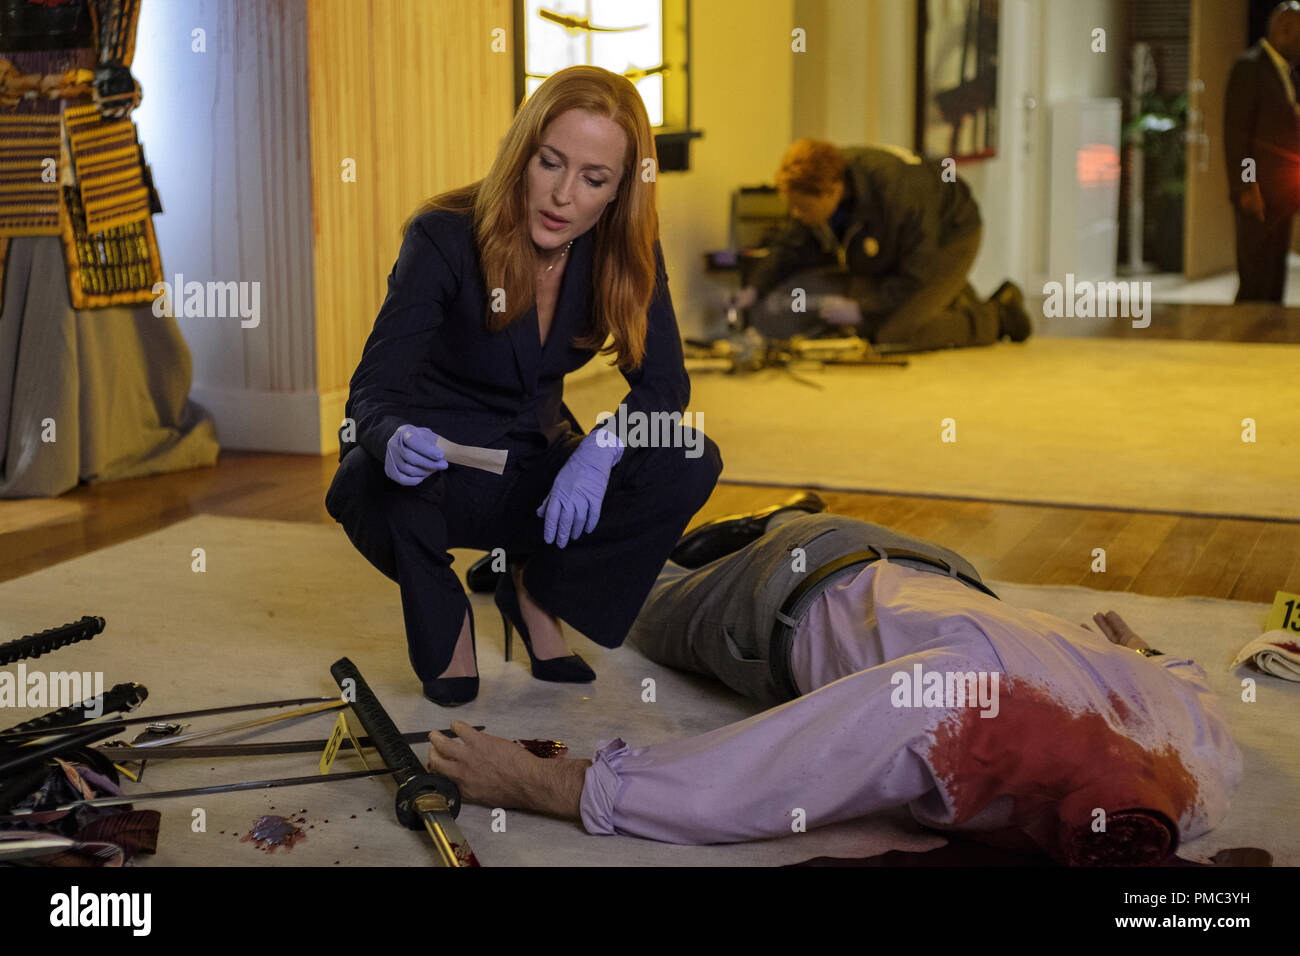 THE X-FILES:  Gillian Anderson in the 'Plus One' episode of THE X-FILES on Fox. © 2018 Fox Broadcasting Co. Cr:  Shane Harvey/Fox - Stock Image